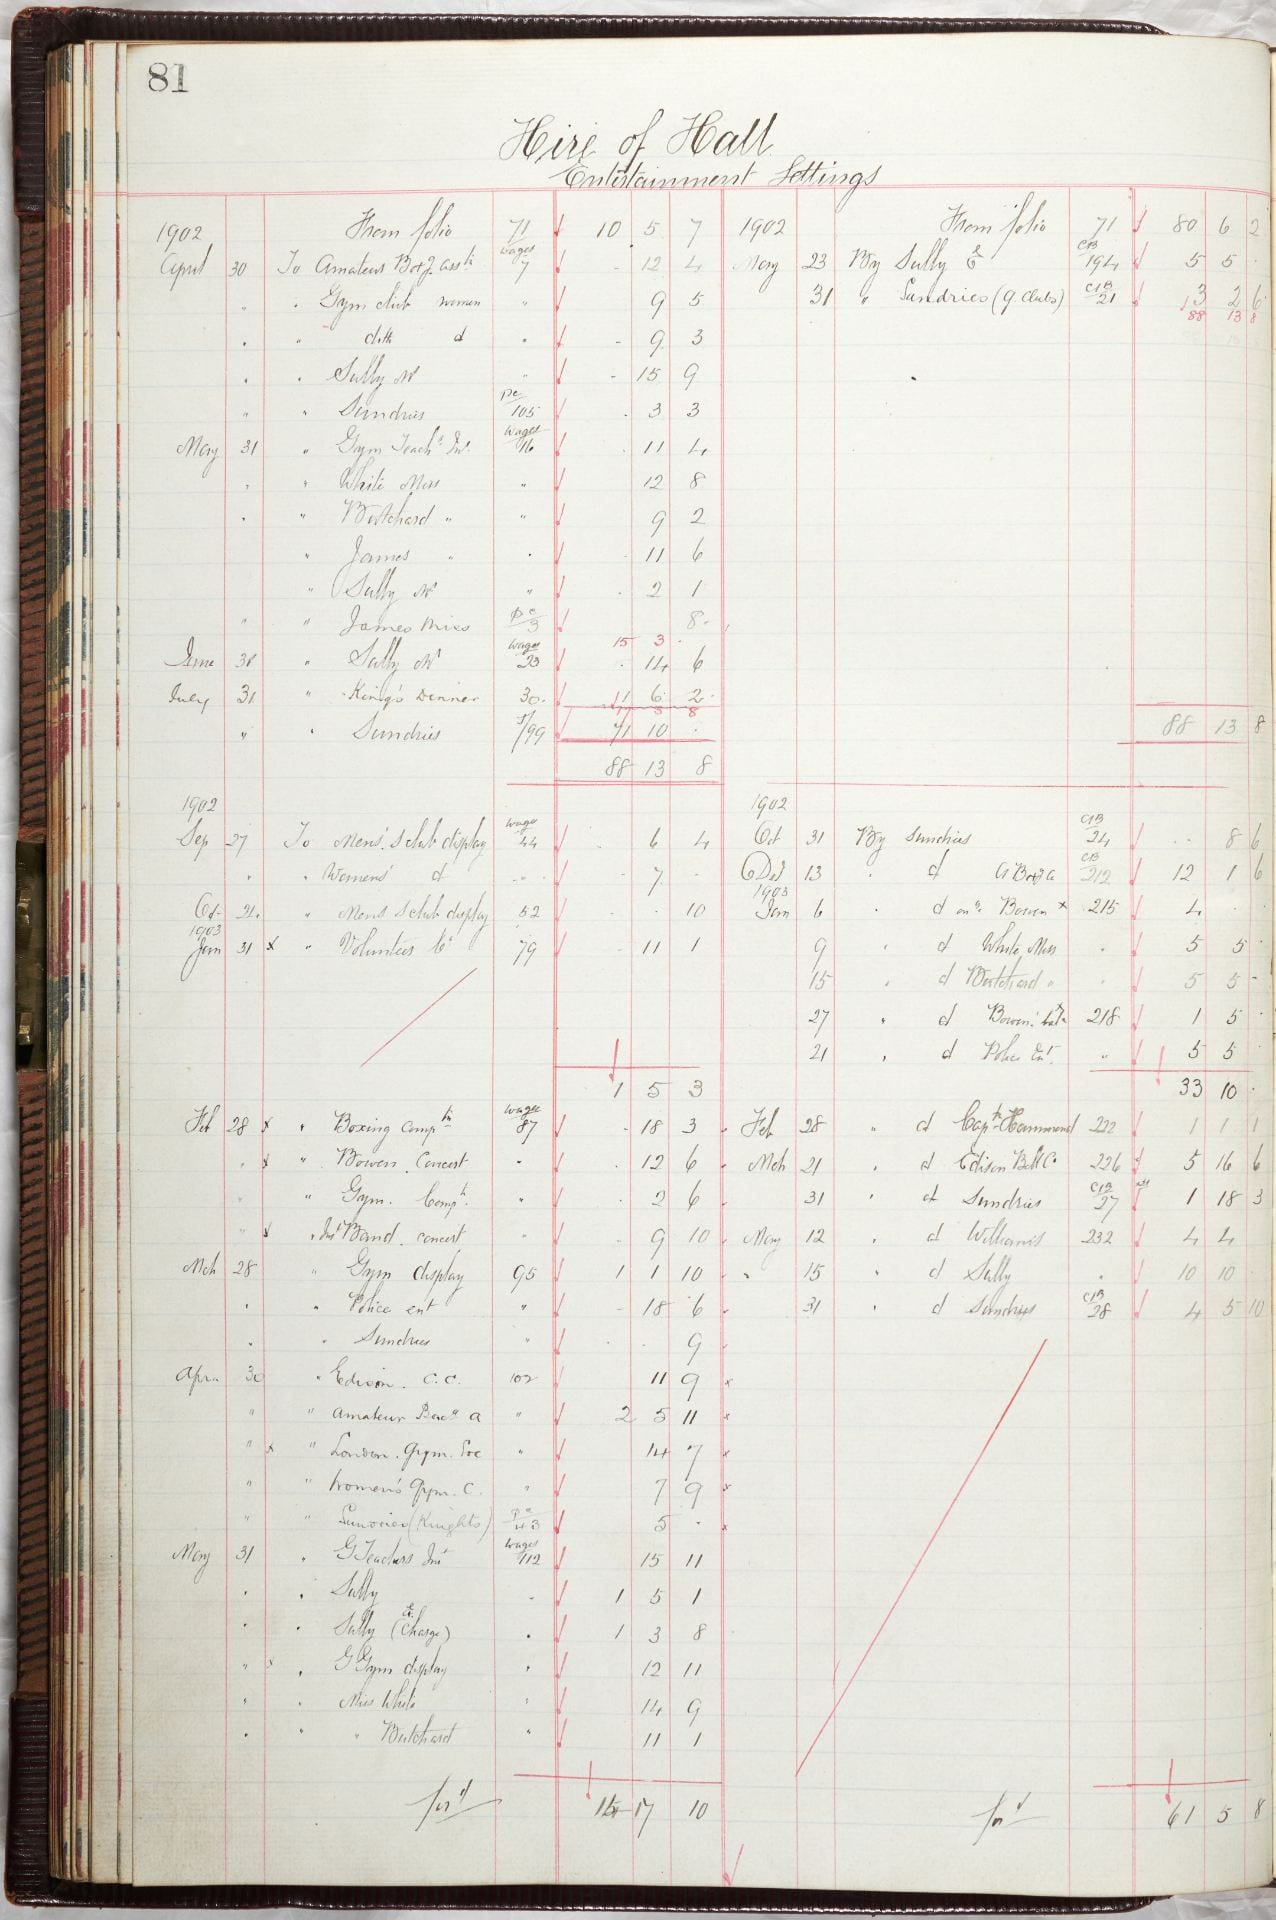 Financial ledger page 81 Hire of Hall - Entertainment Settings. Costs arising from 1902.